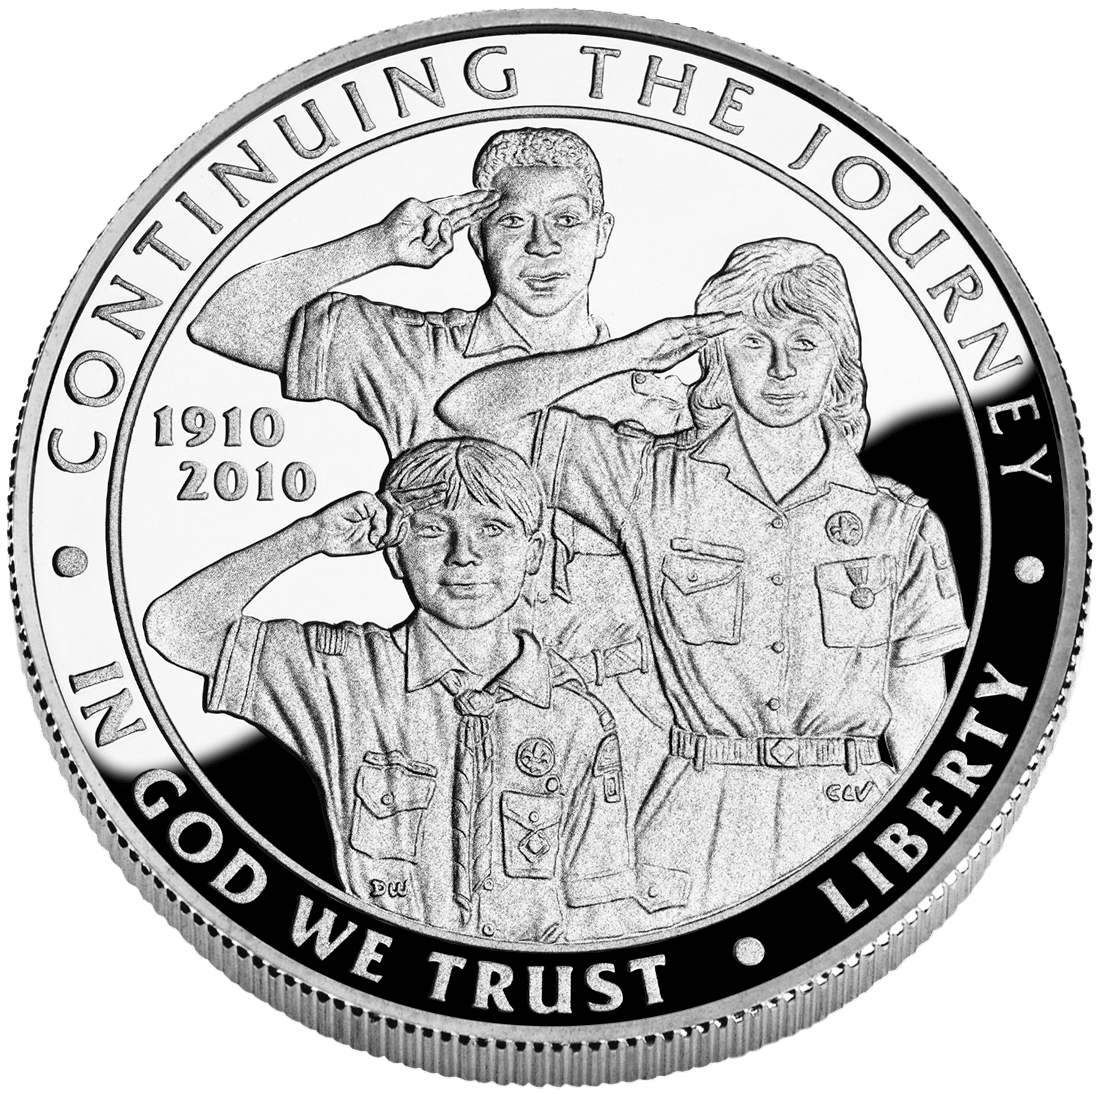 Boy Scouts of America Silver Dollar Centennial Commemorative Coin obverse Boy Scouts Set to End Ban on Gay Members